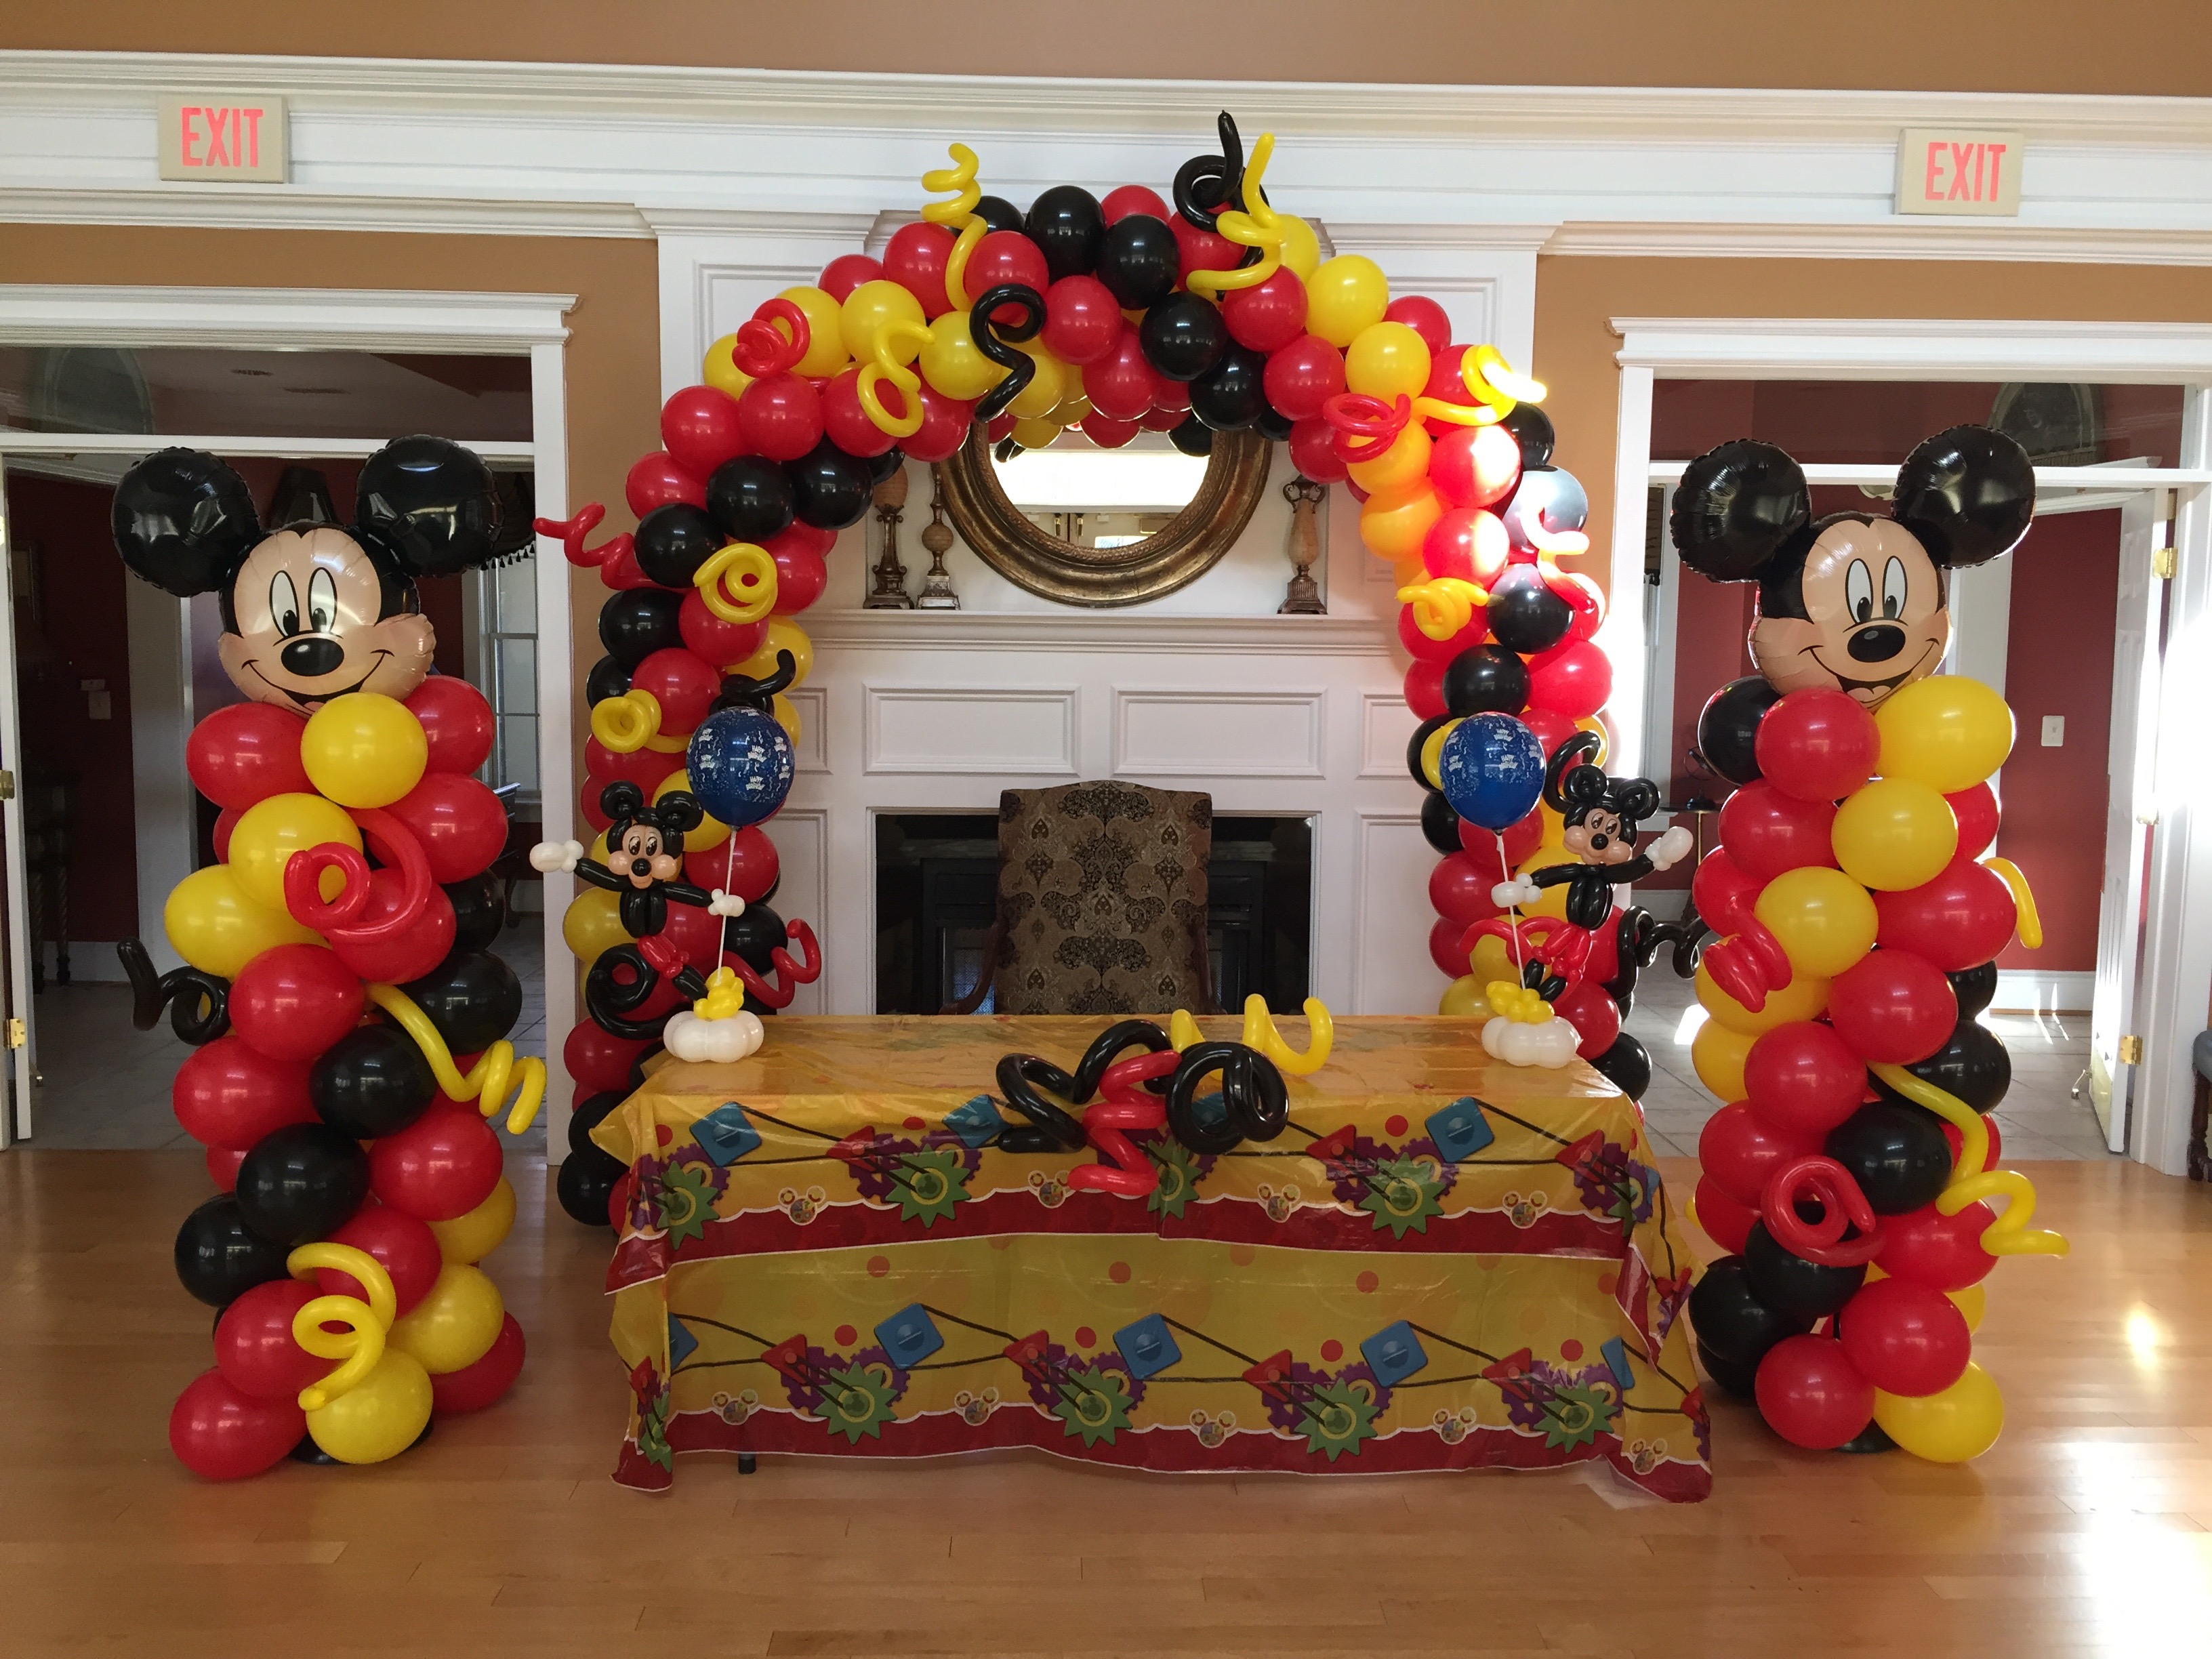 dfa mickey balloon decor arch column